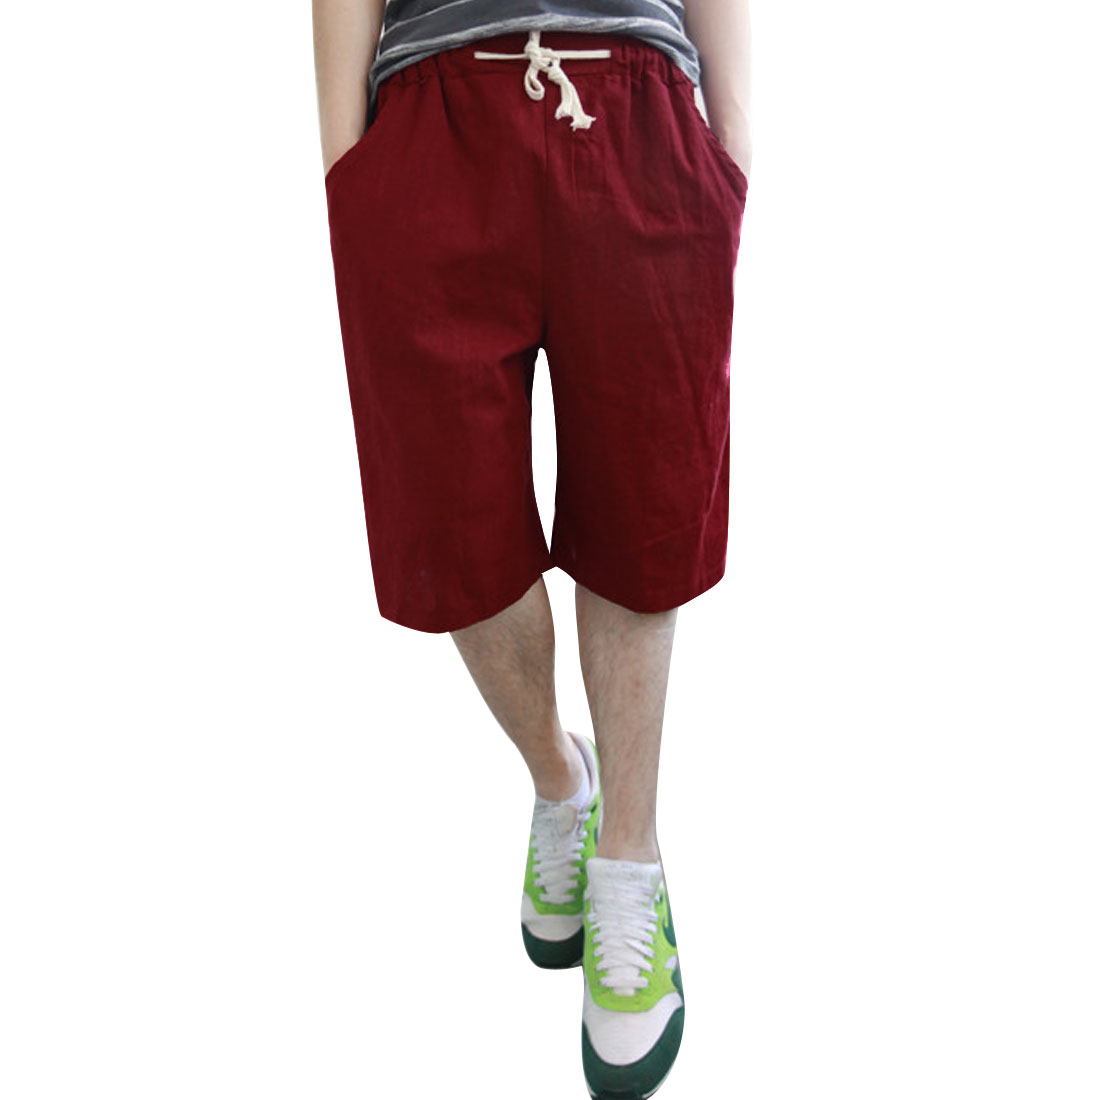 Men Above Knee Solid Color Stretchy Waist Chic Shorts Burgundy W27